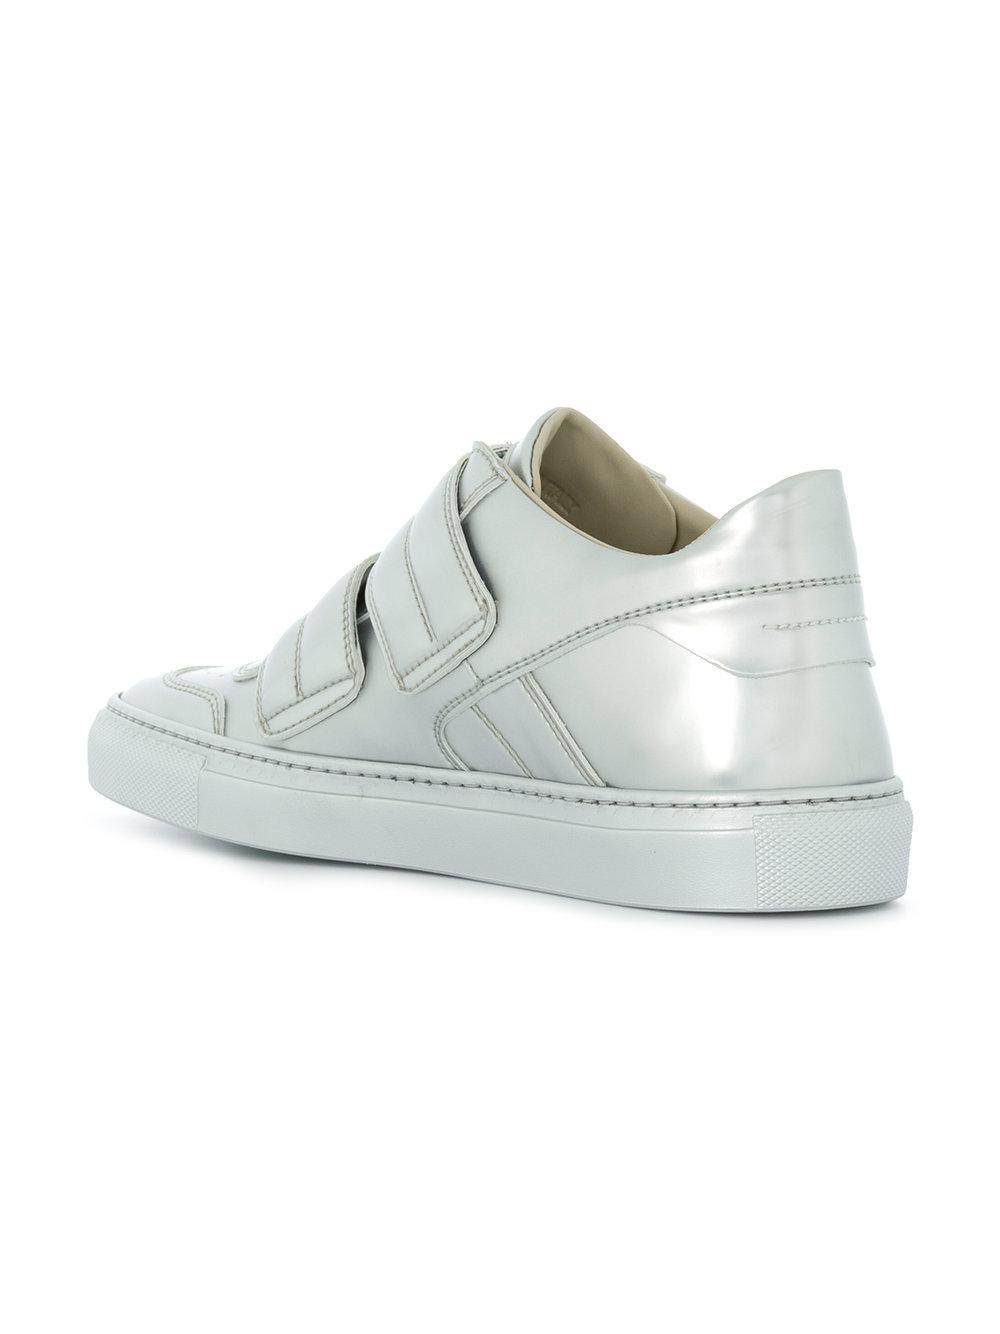 contrast strap sneakers - Grey Maison Martin Margiela